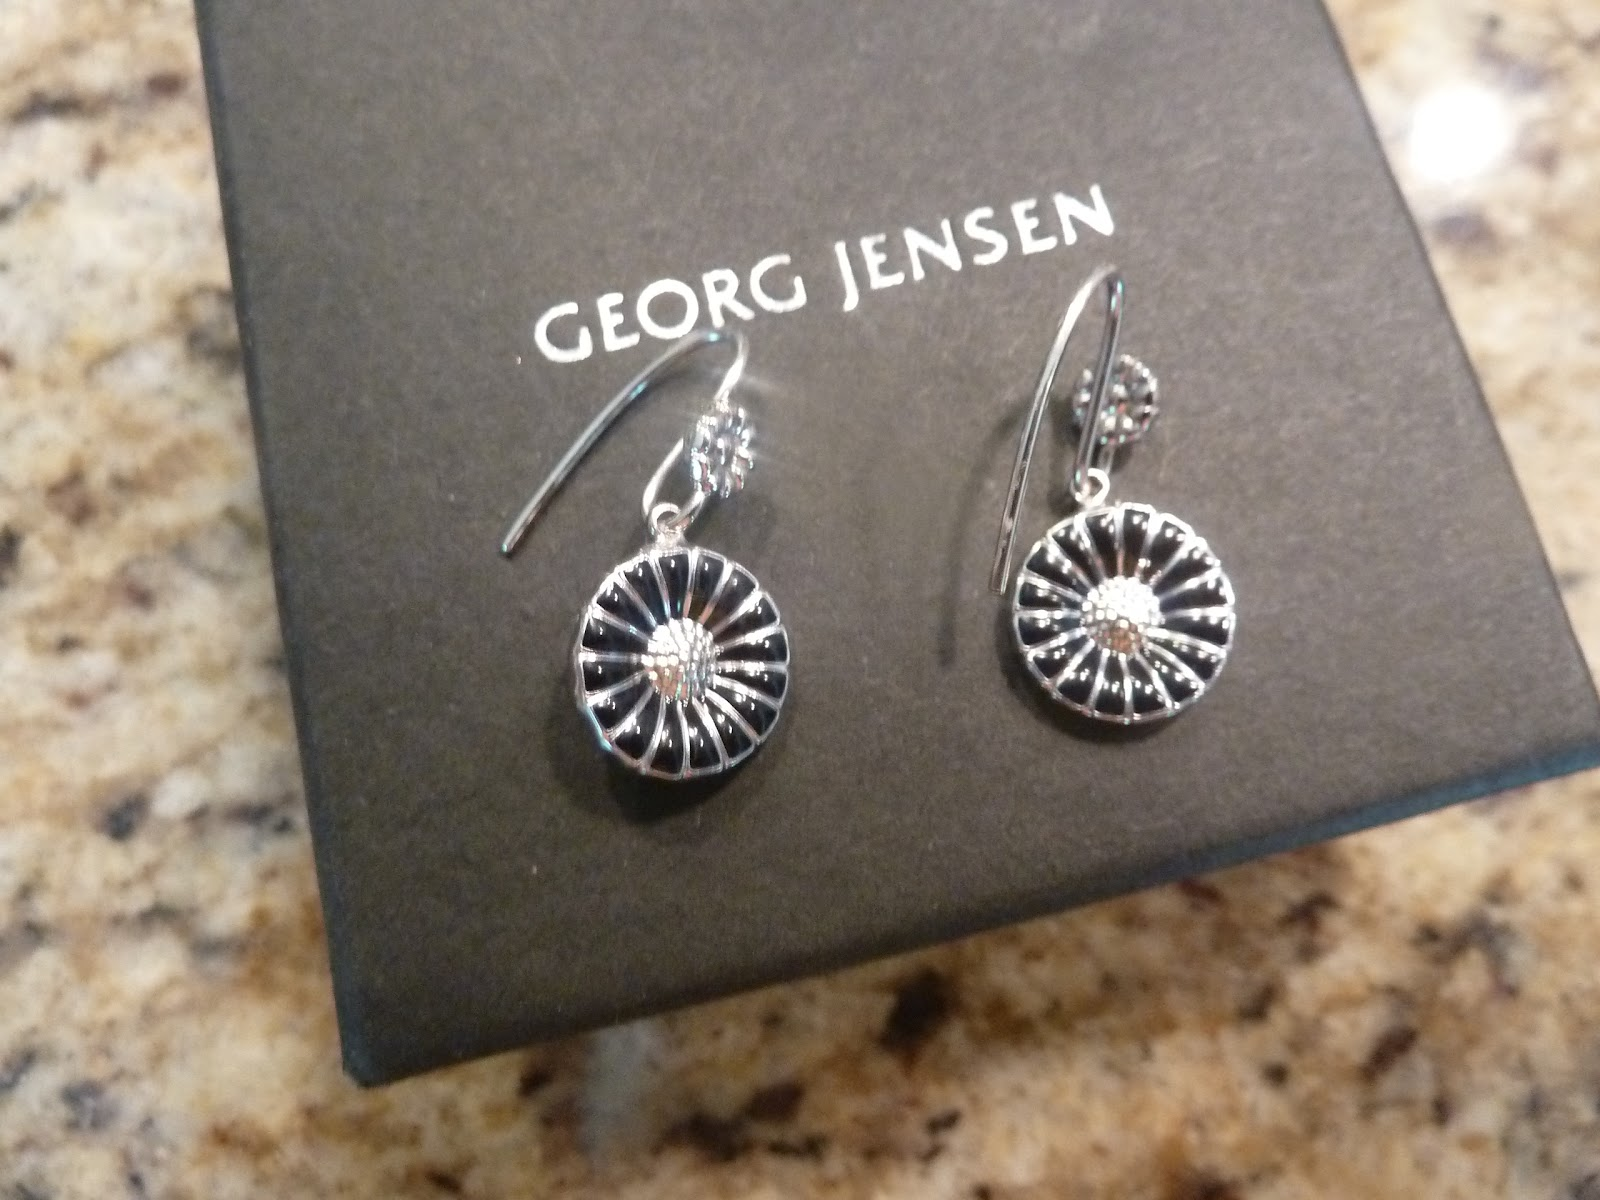 a568f6a8a Sparrows & Sparkle: Grapes, Daisies, and Georg Jensen on Sale